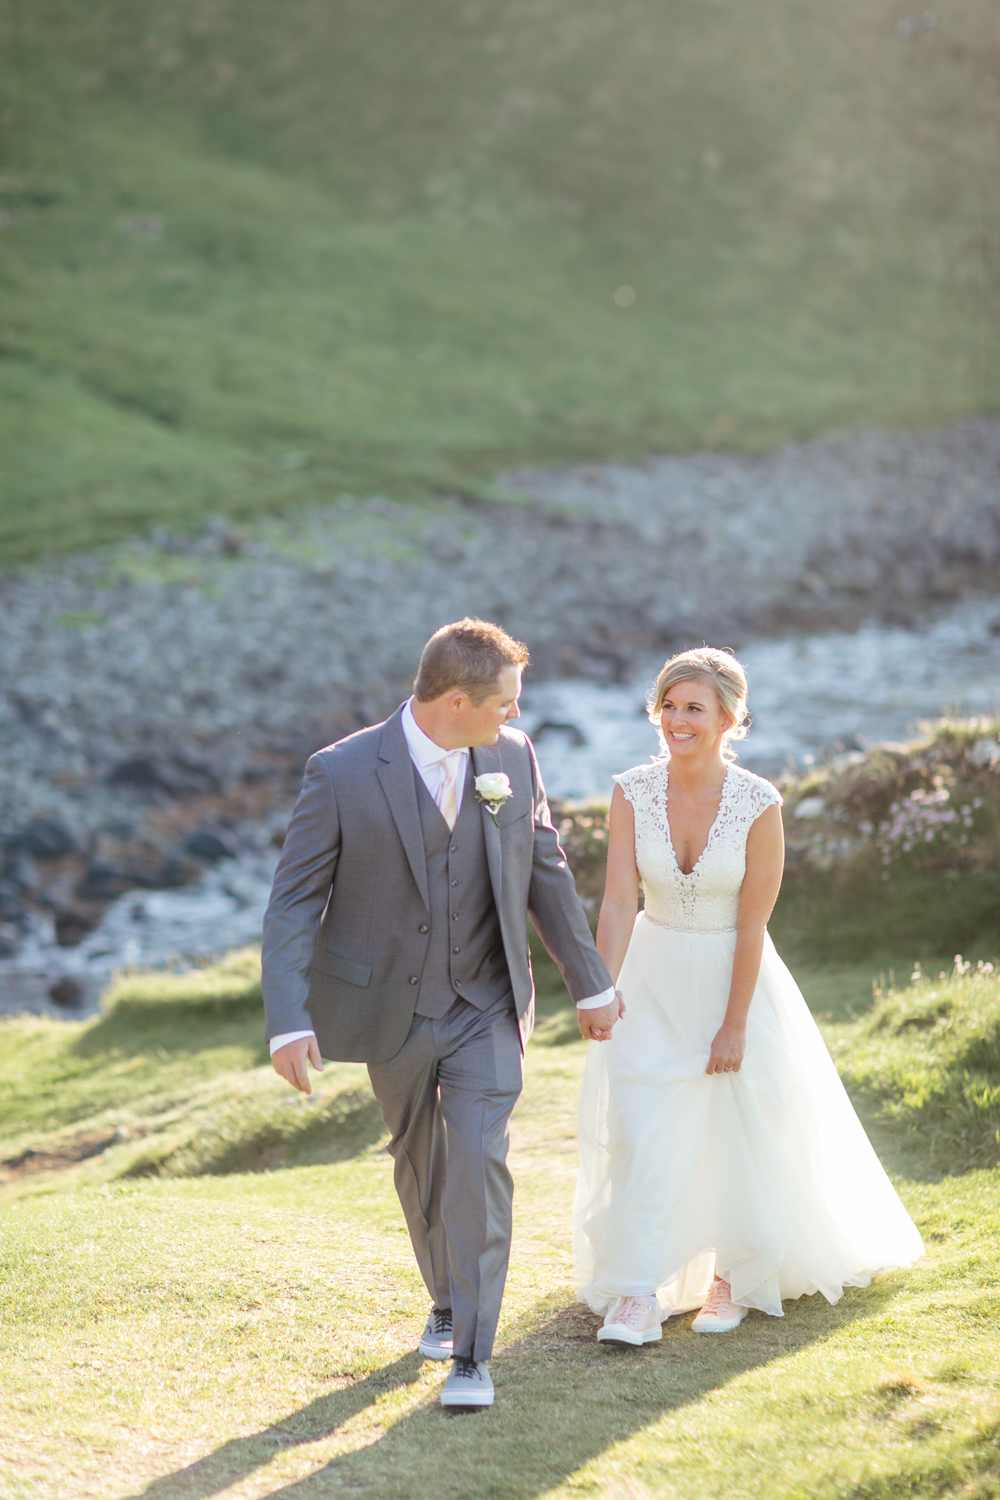 Bride and groom walking in the evening sunlight wearing converse shoes